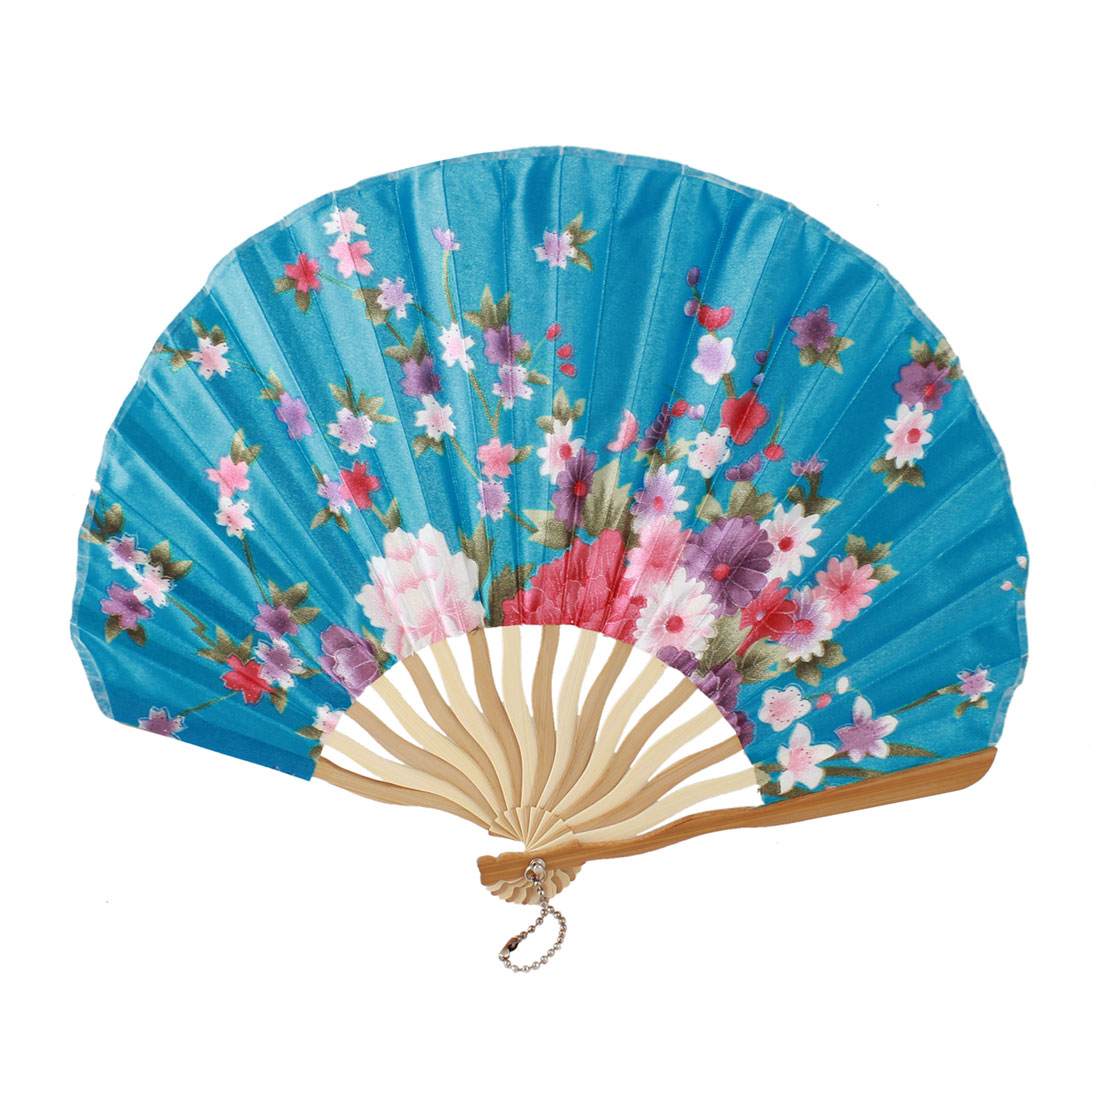 Beige Bamboo Ribs Flower Printed Seashell Shape Folding Hand Fan Teal Blue